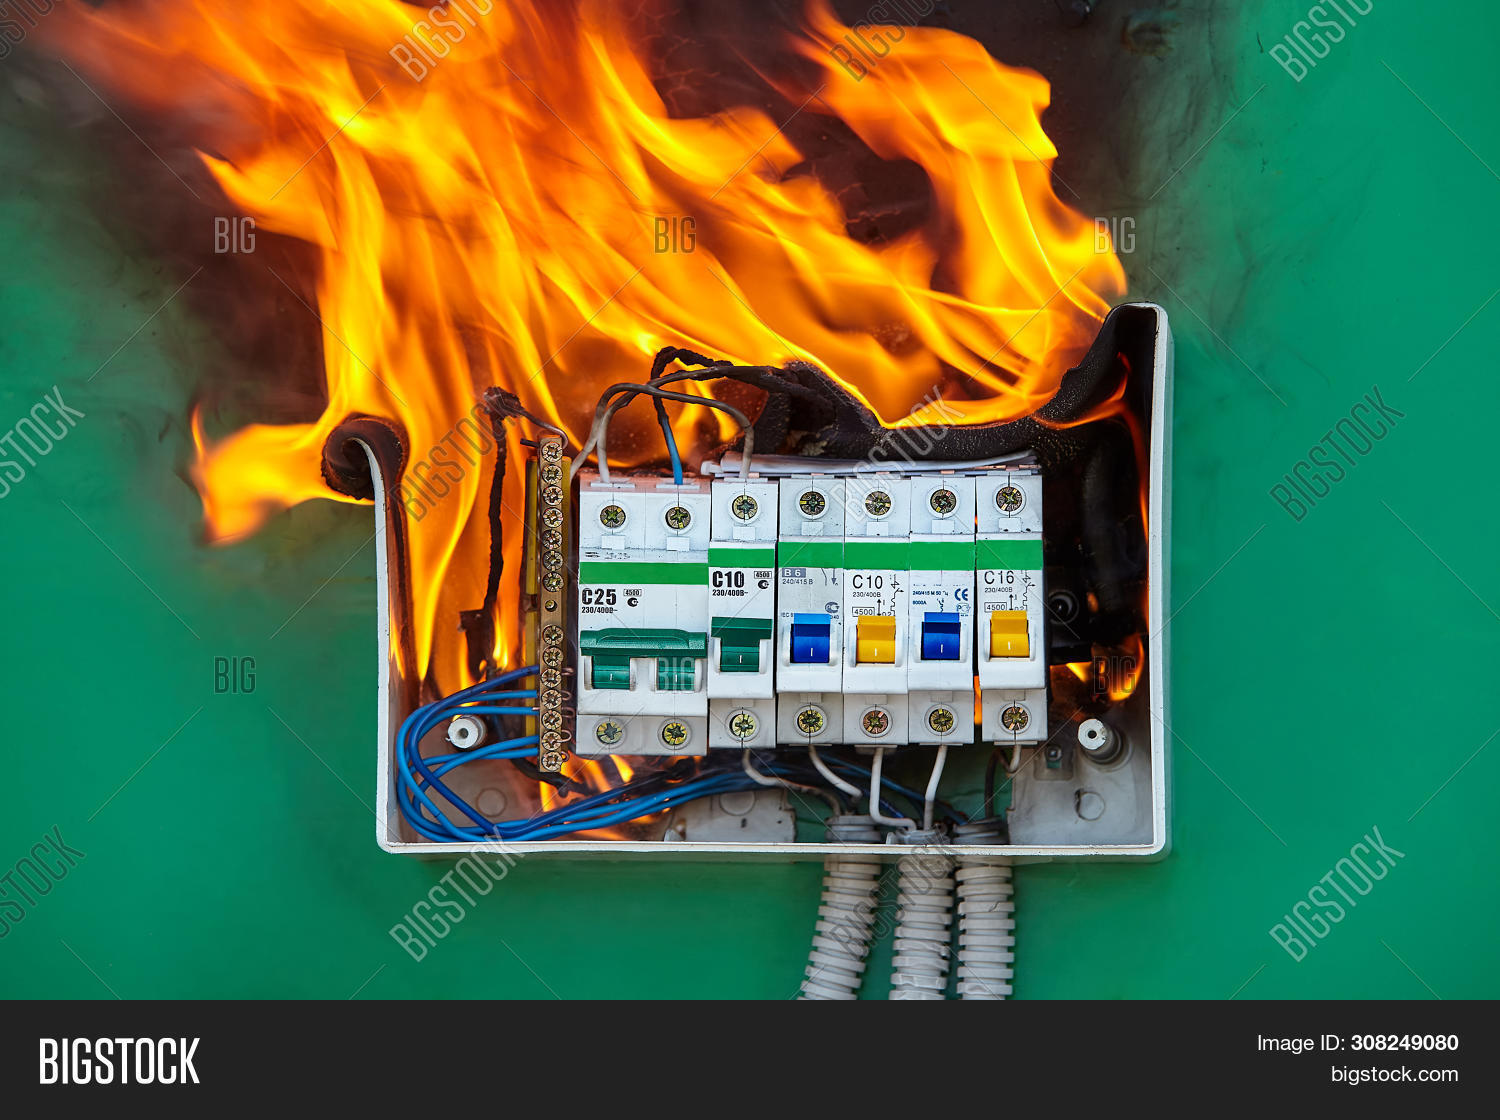 bad,box,breaker,broken,burn,burned,burning,burnout,burnt,cable,circuit,closeup,combustion,damaged,danger,dangerous,defective,electric,electrical,electricity,equipment,failure,faulty,fire,flame,fuse,hazard,home,house,nobody,overloaded,power,prevention,problem,process,risk,safety,security,smoke,surge,switchboard,system,voltage,wall,wire,wiring,wrong